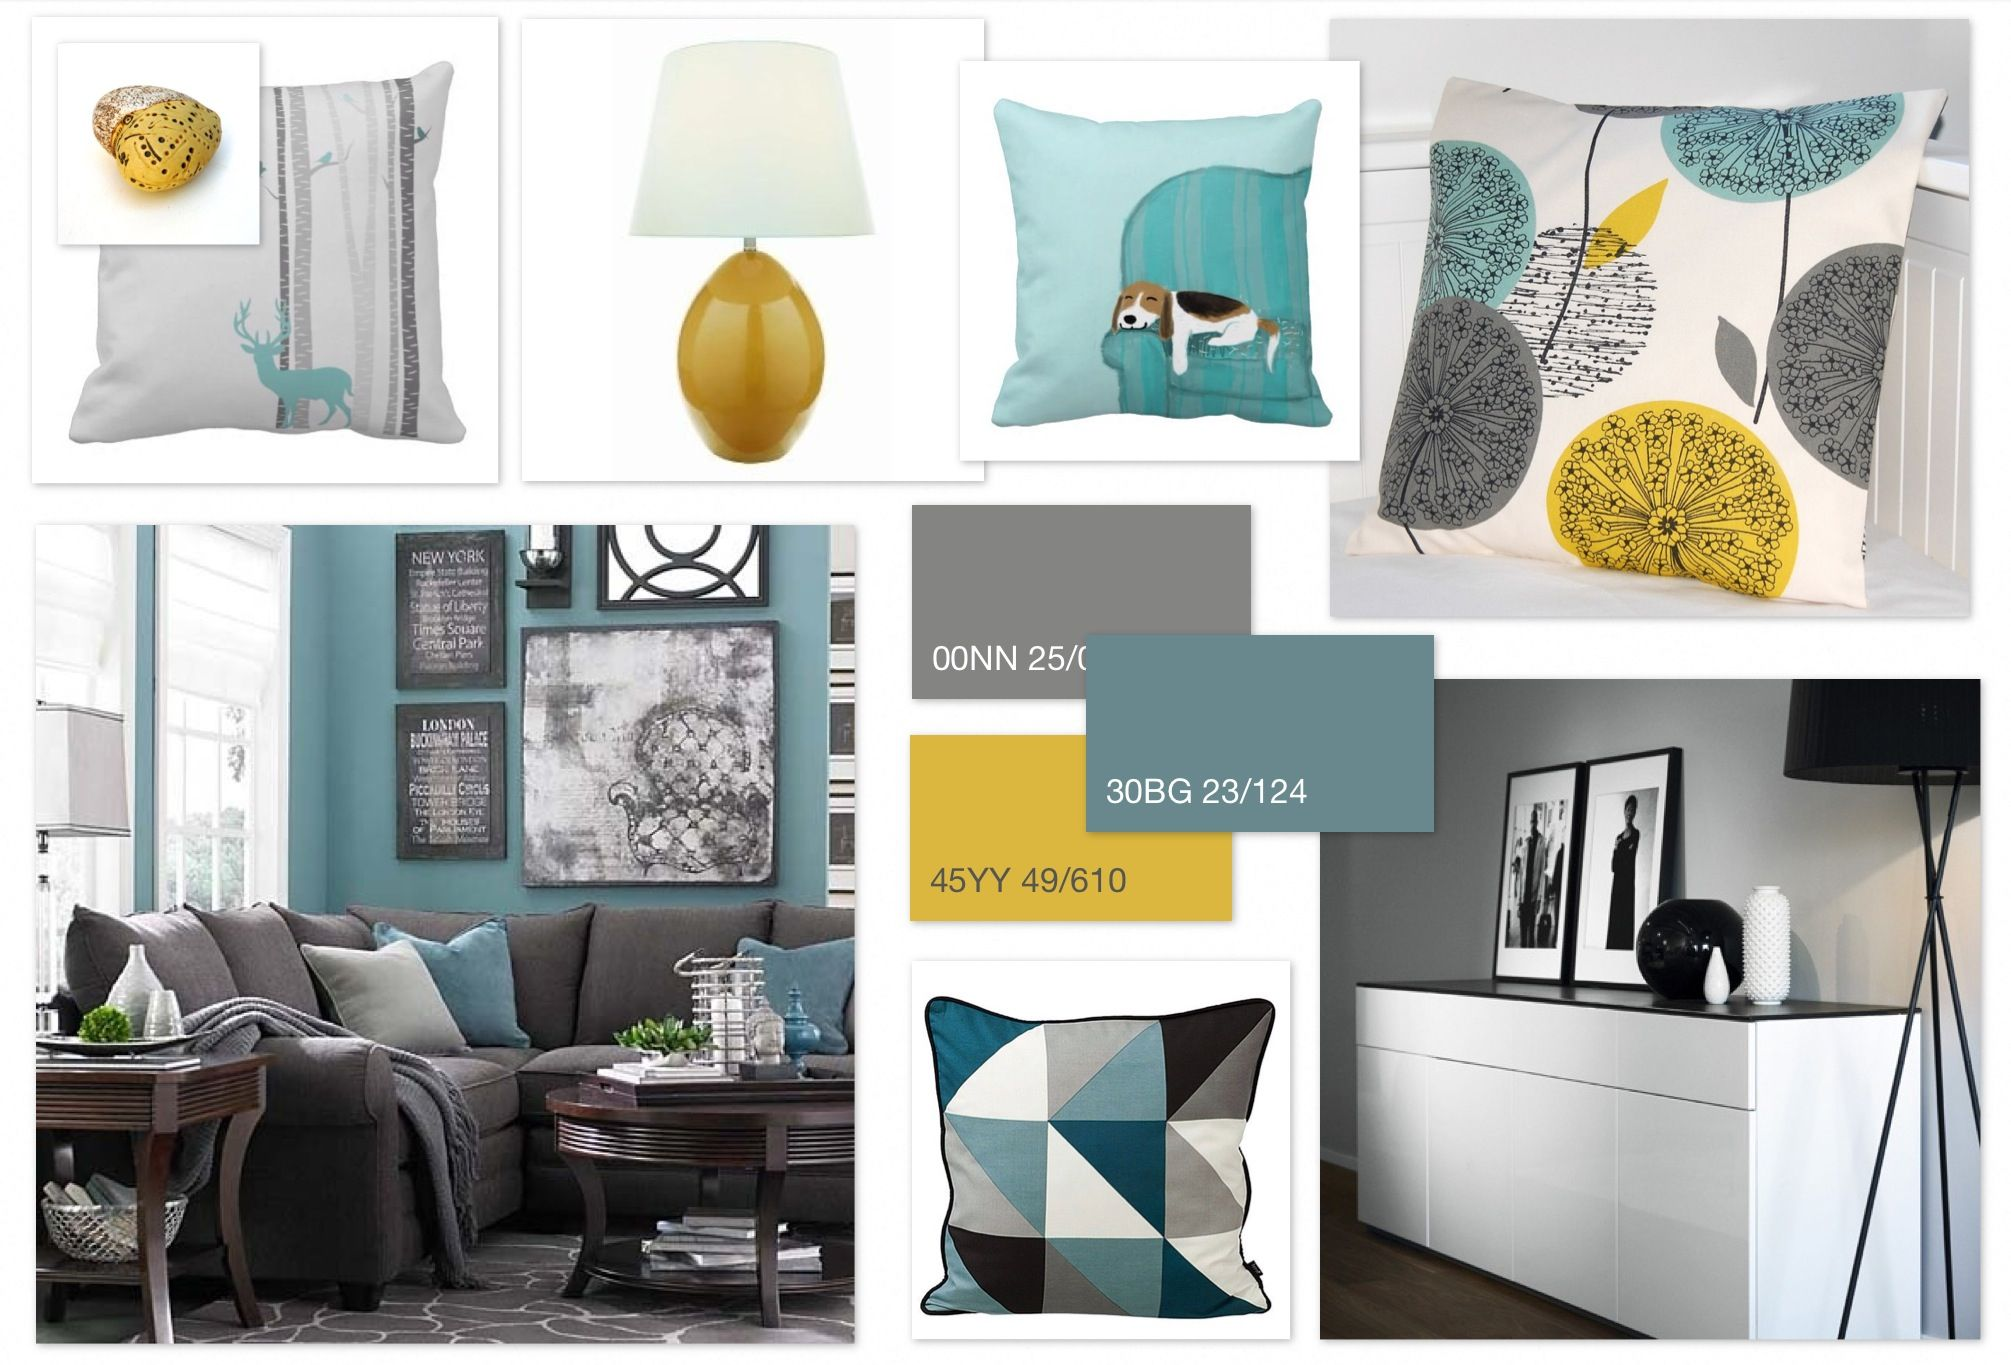 Grey Teal & Ochre scheme for a family living room